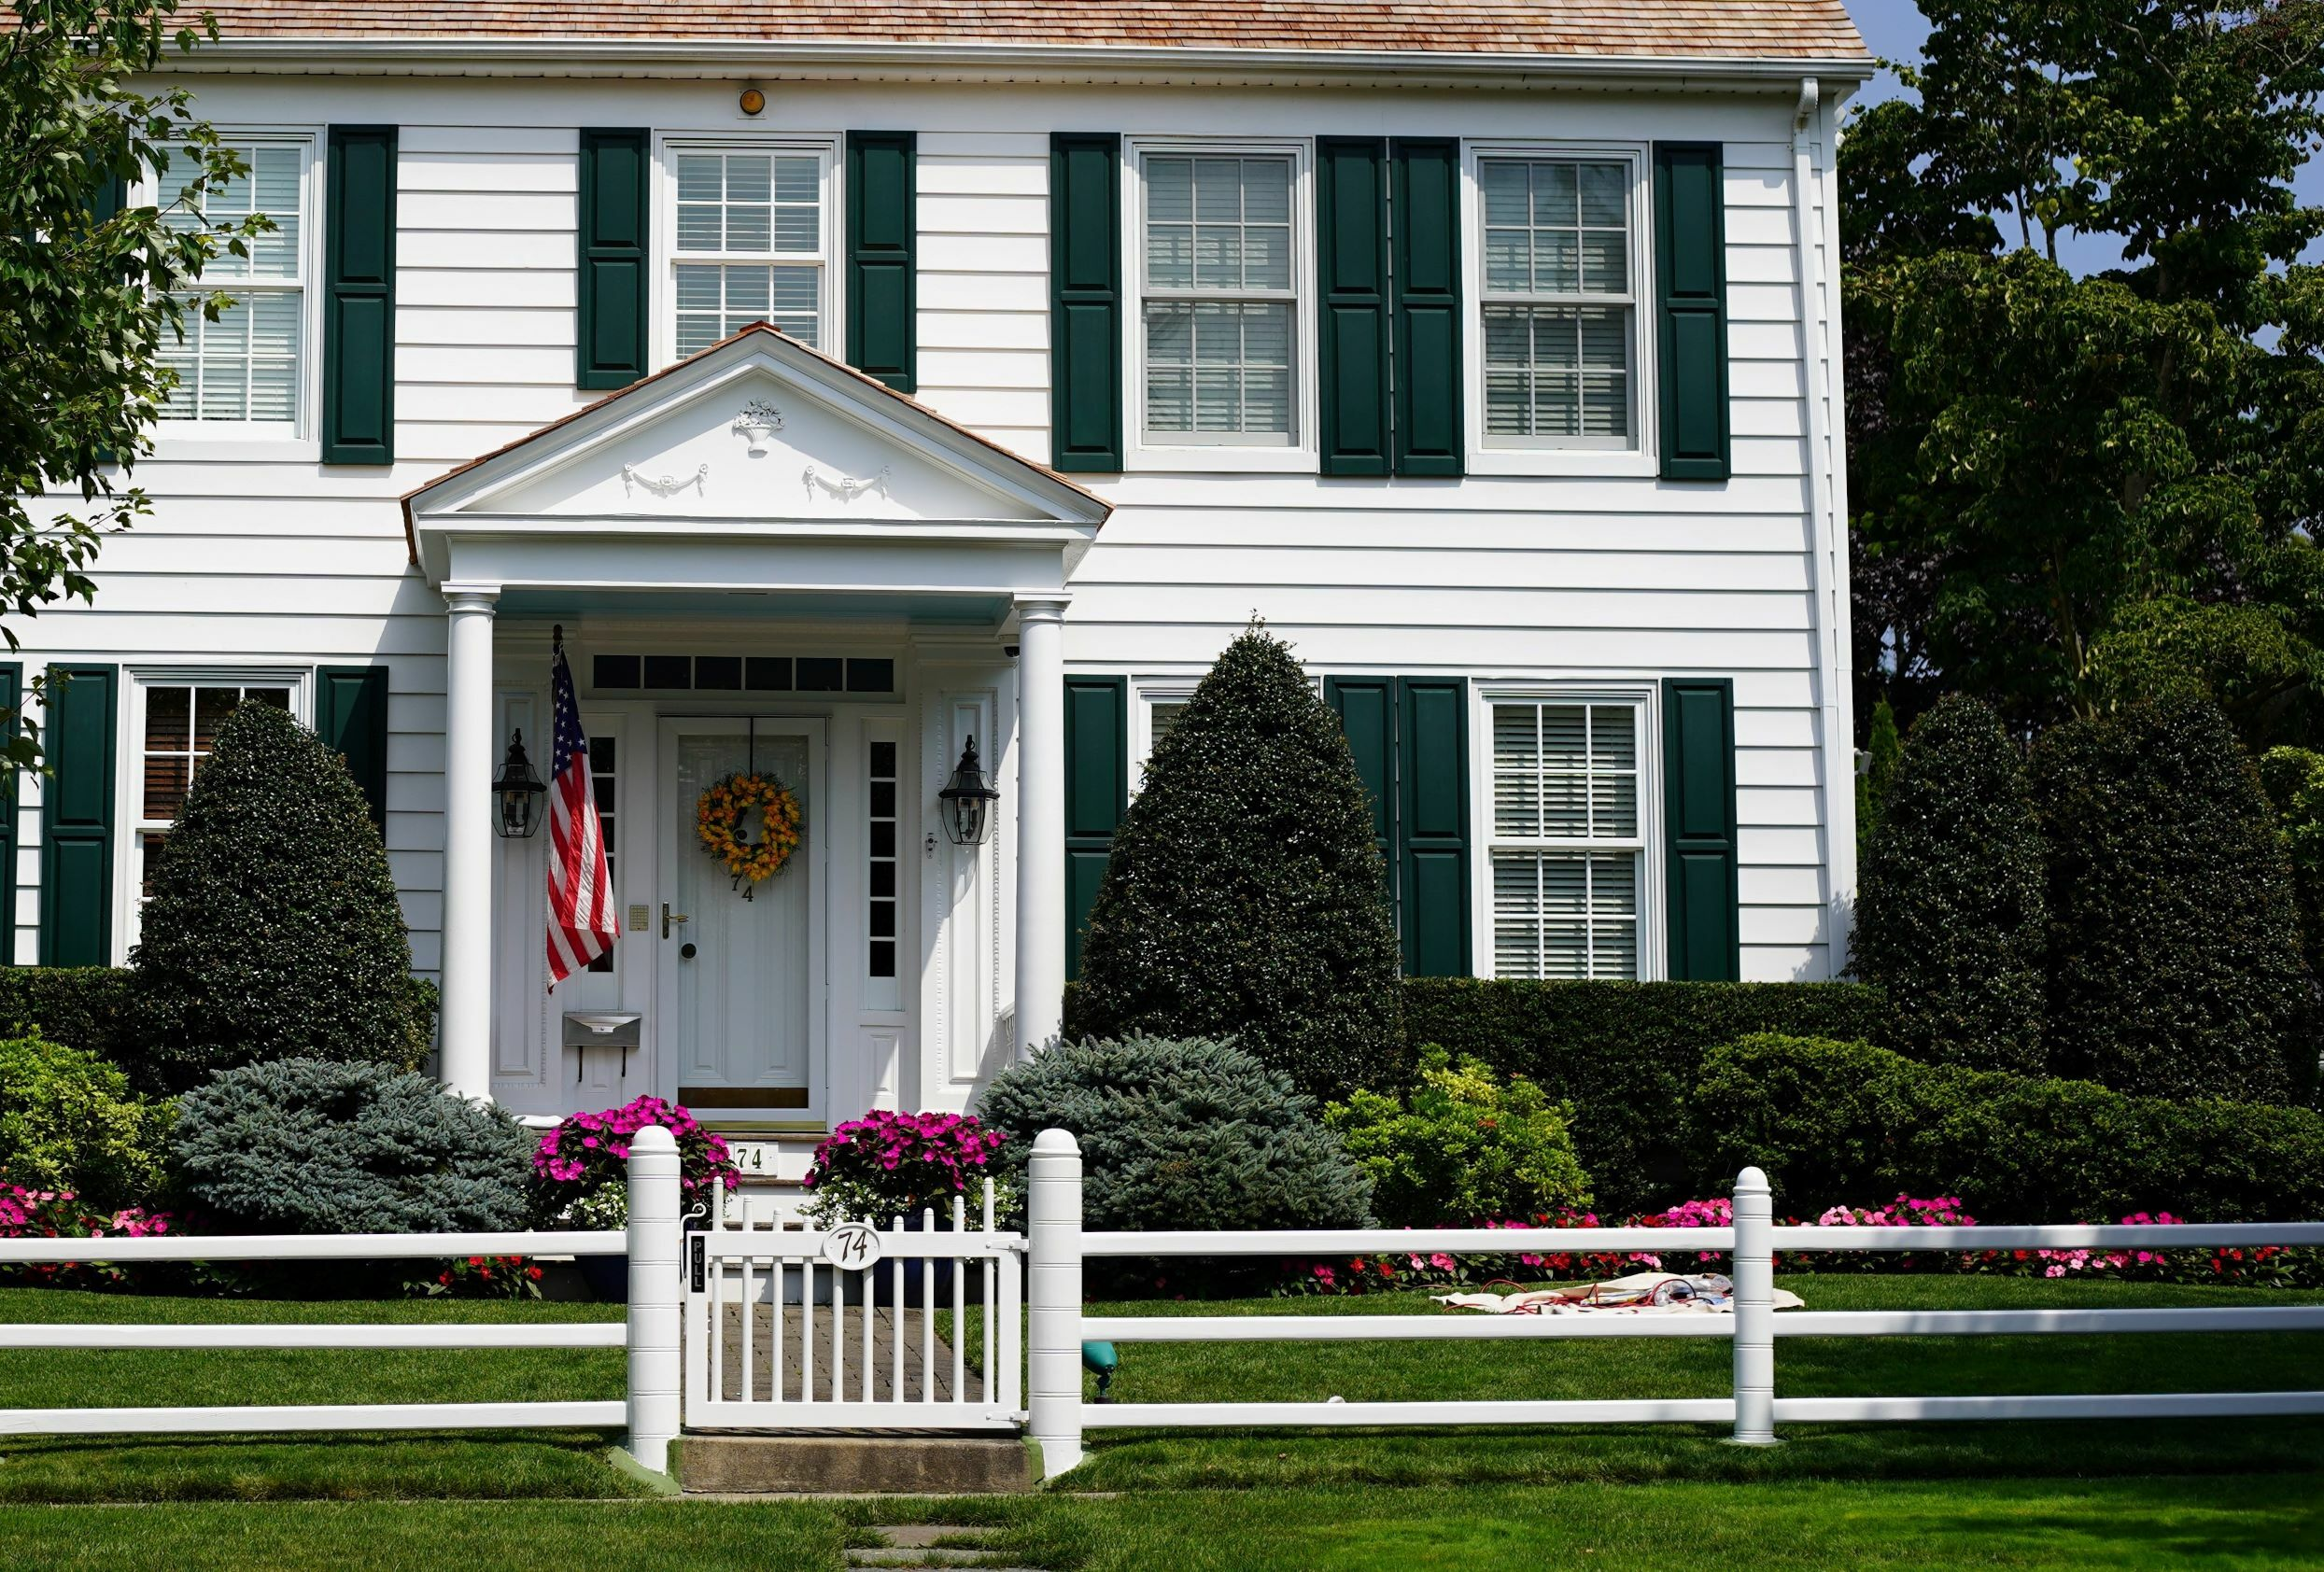 The Edwin Post House